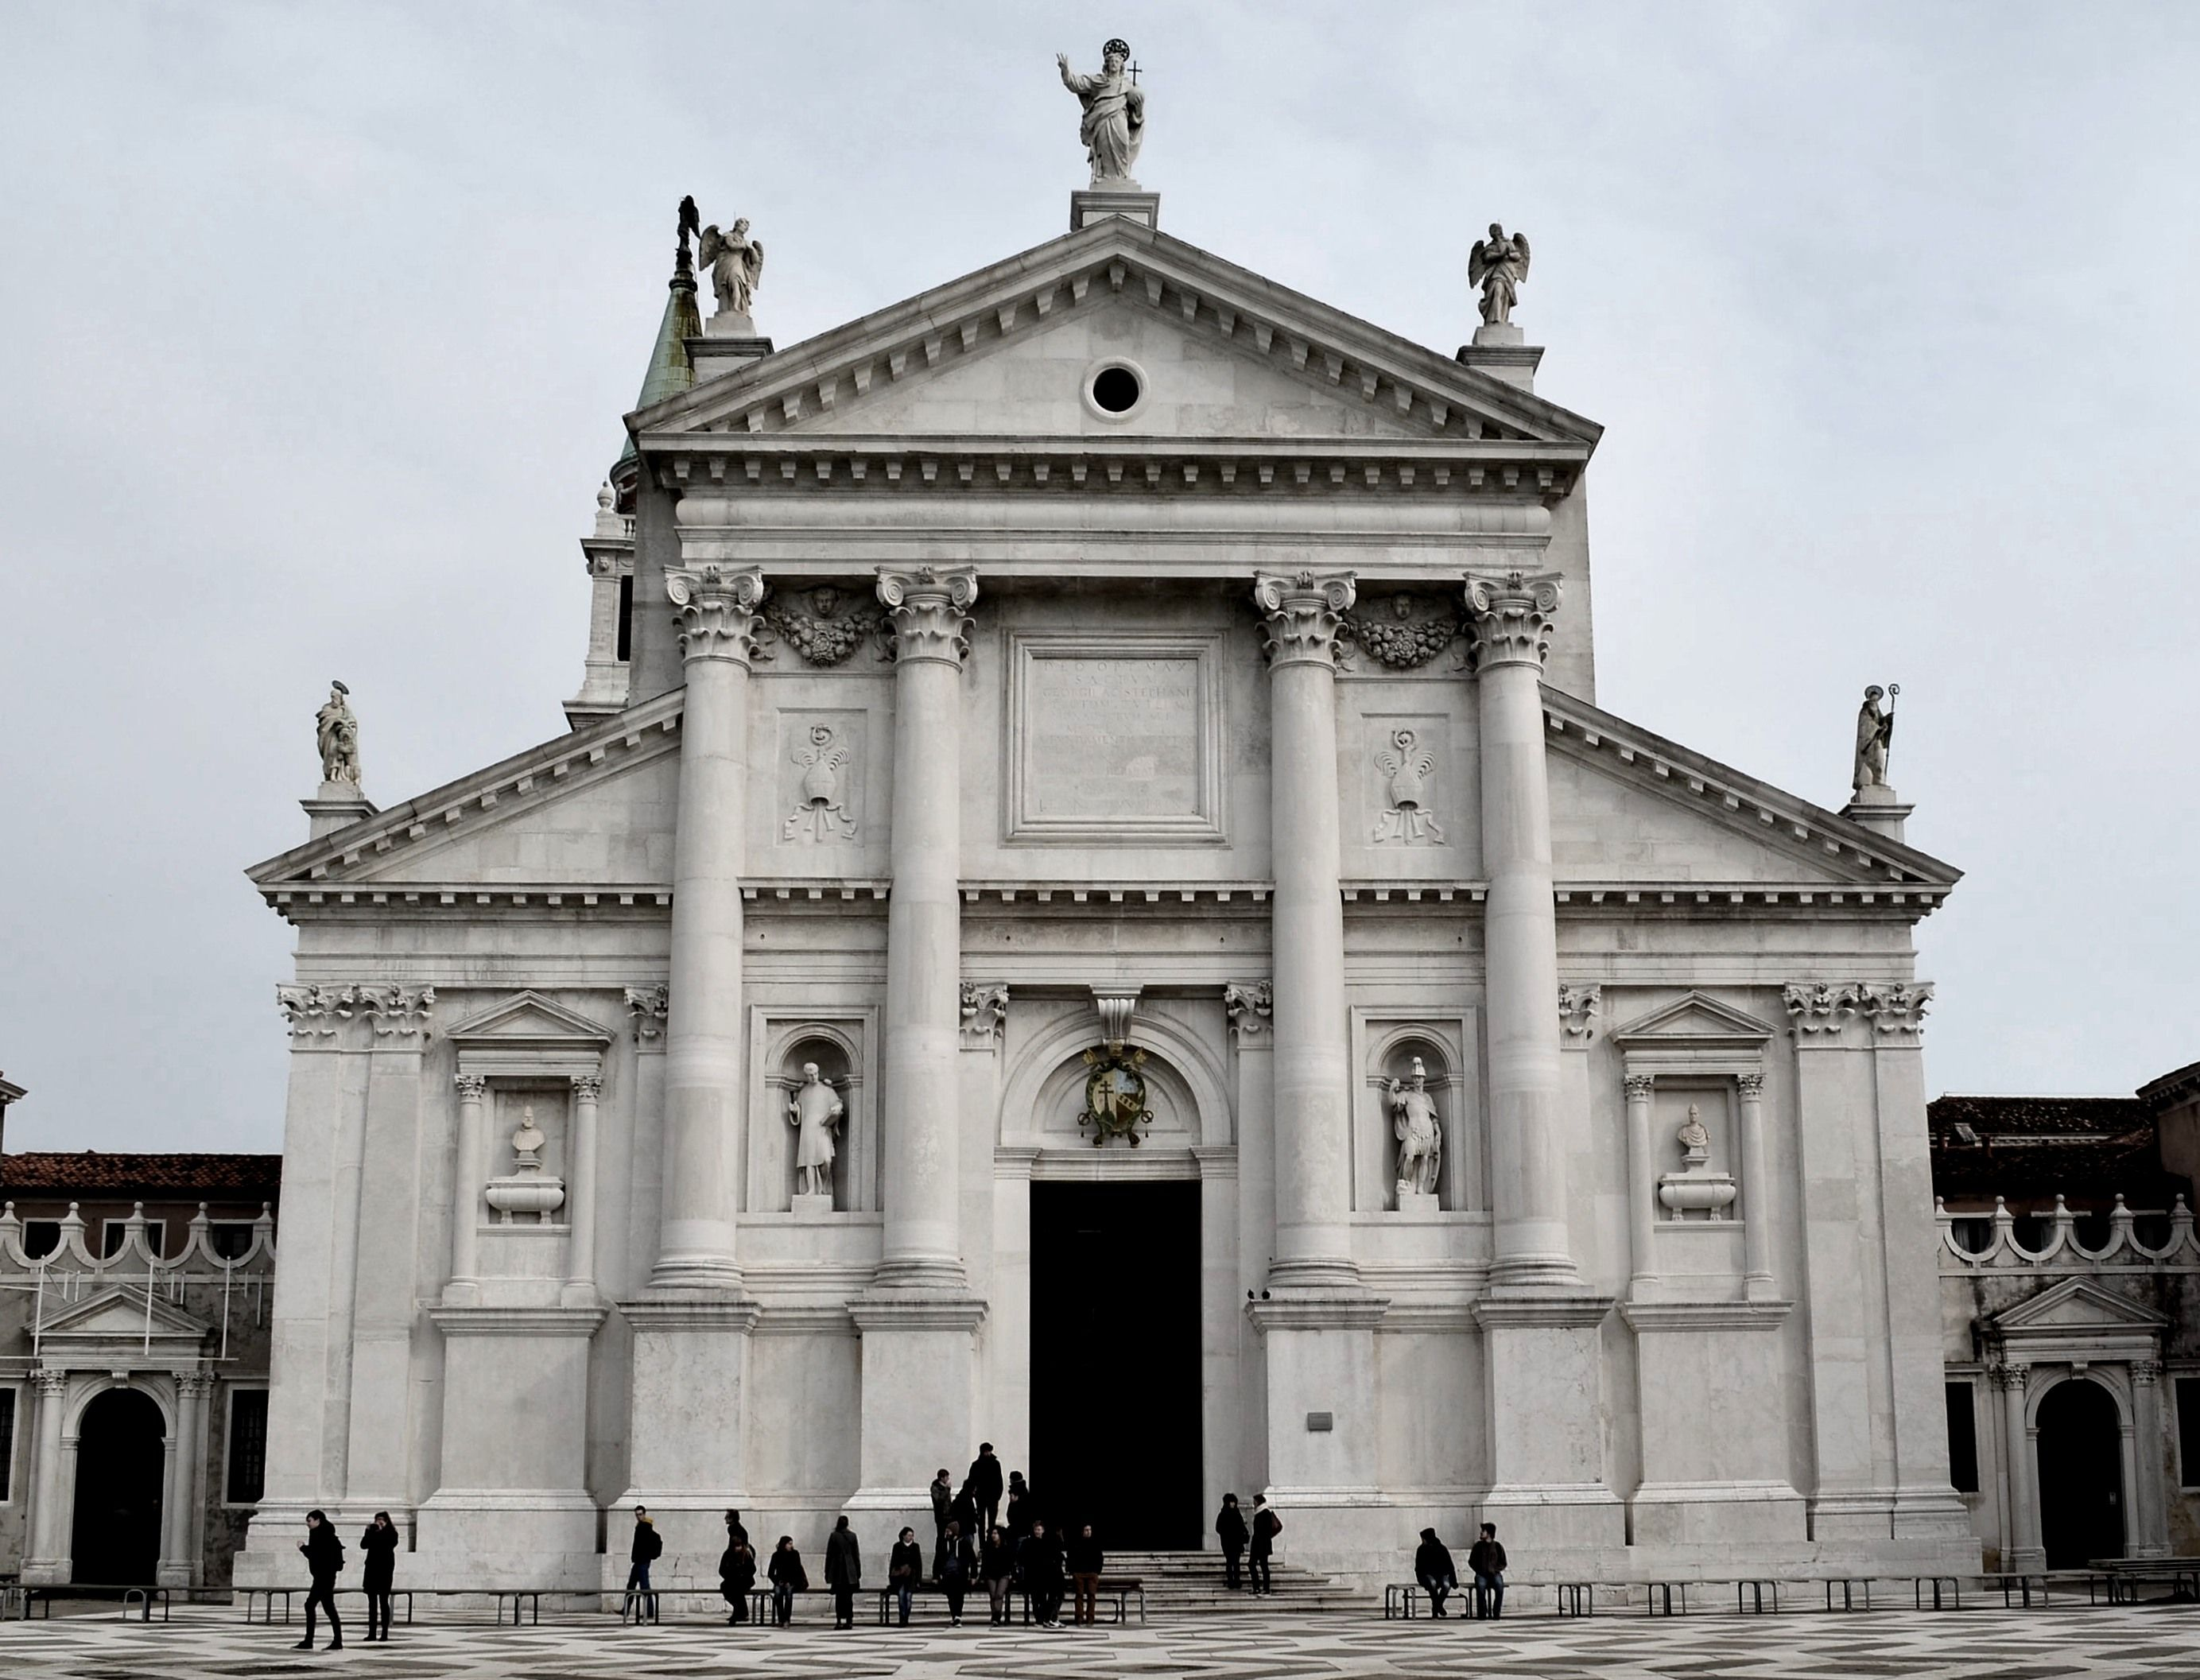 HIGH RENAISSANCE ARCHITECTURE, North Italy; Facade of San Giorgio Maggiore,  Venice, begun 1566, by Palladio. # The central temple front is articulated  with ...